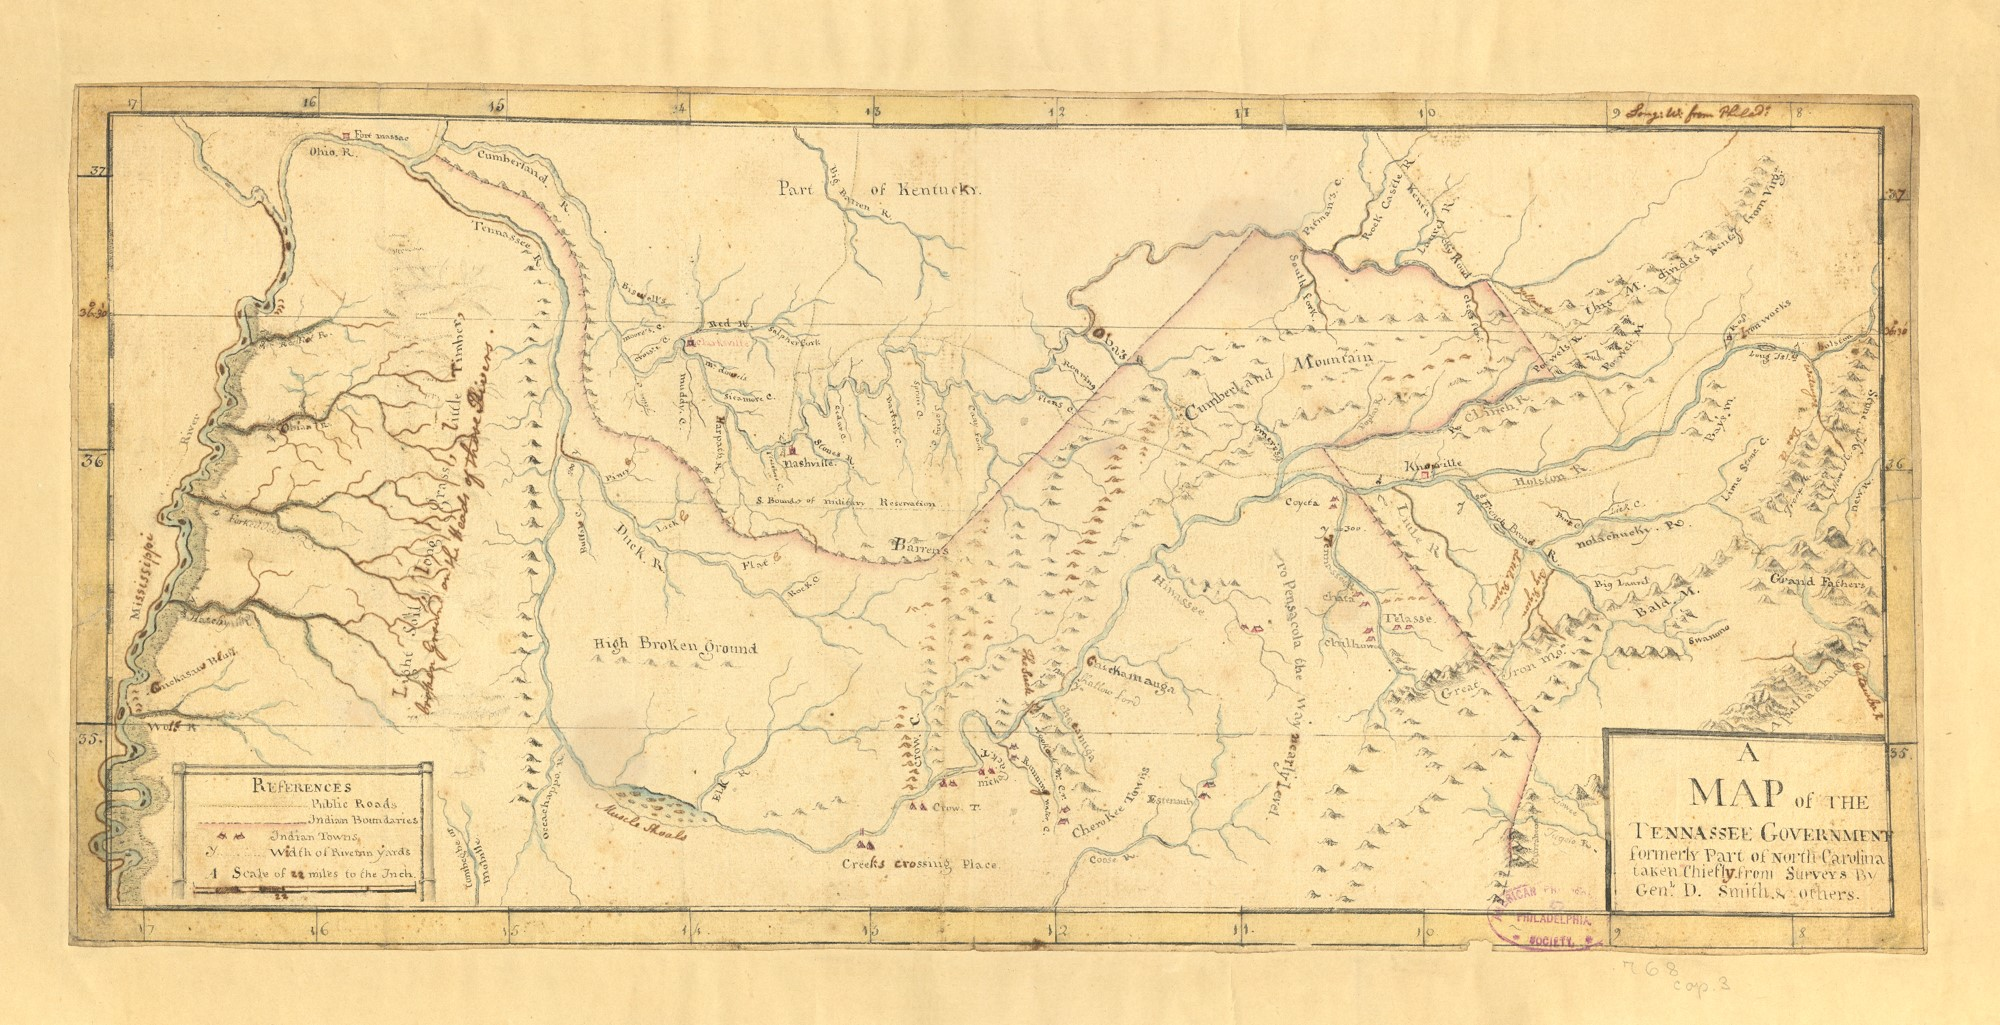 hand colored map of tennessee